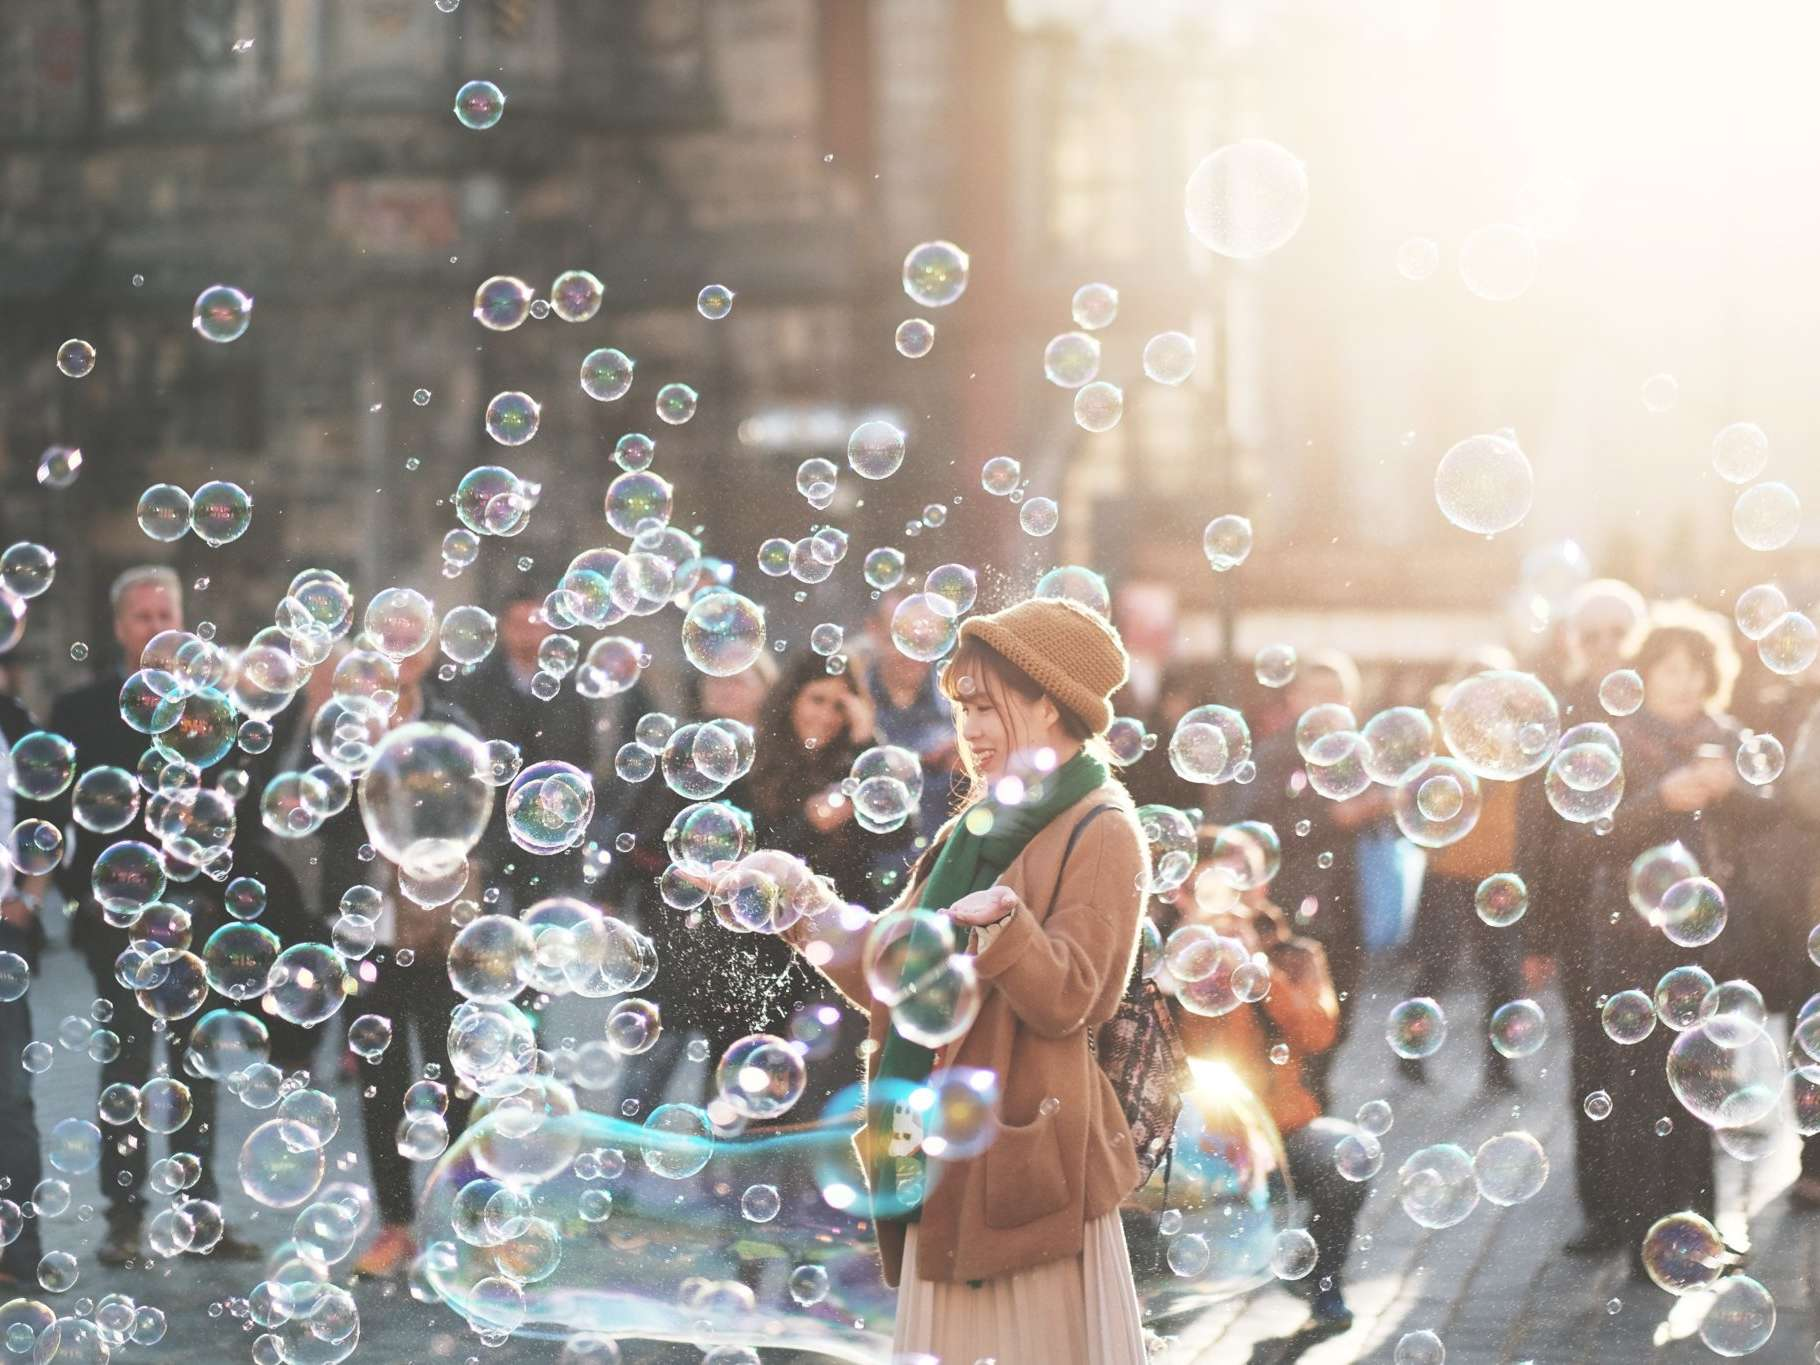 Woman in crowd surrounded by bubbles